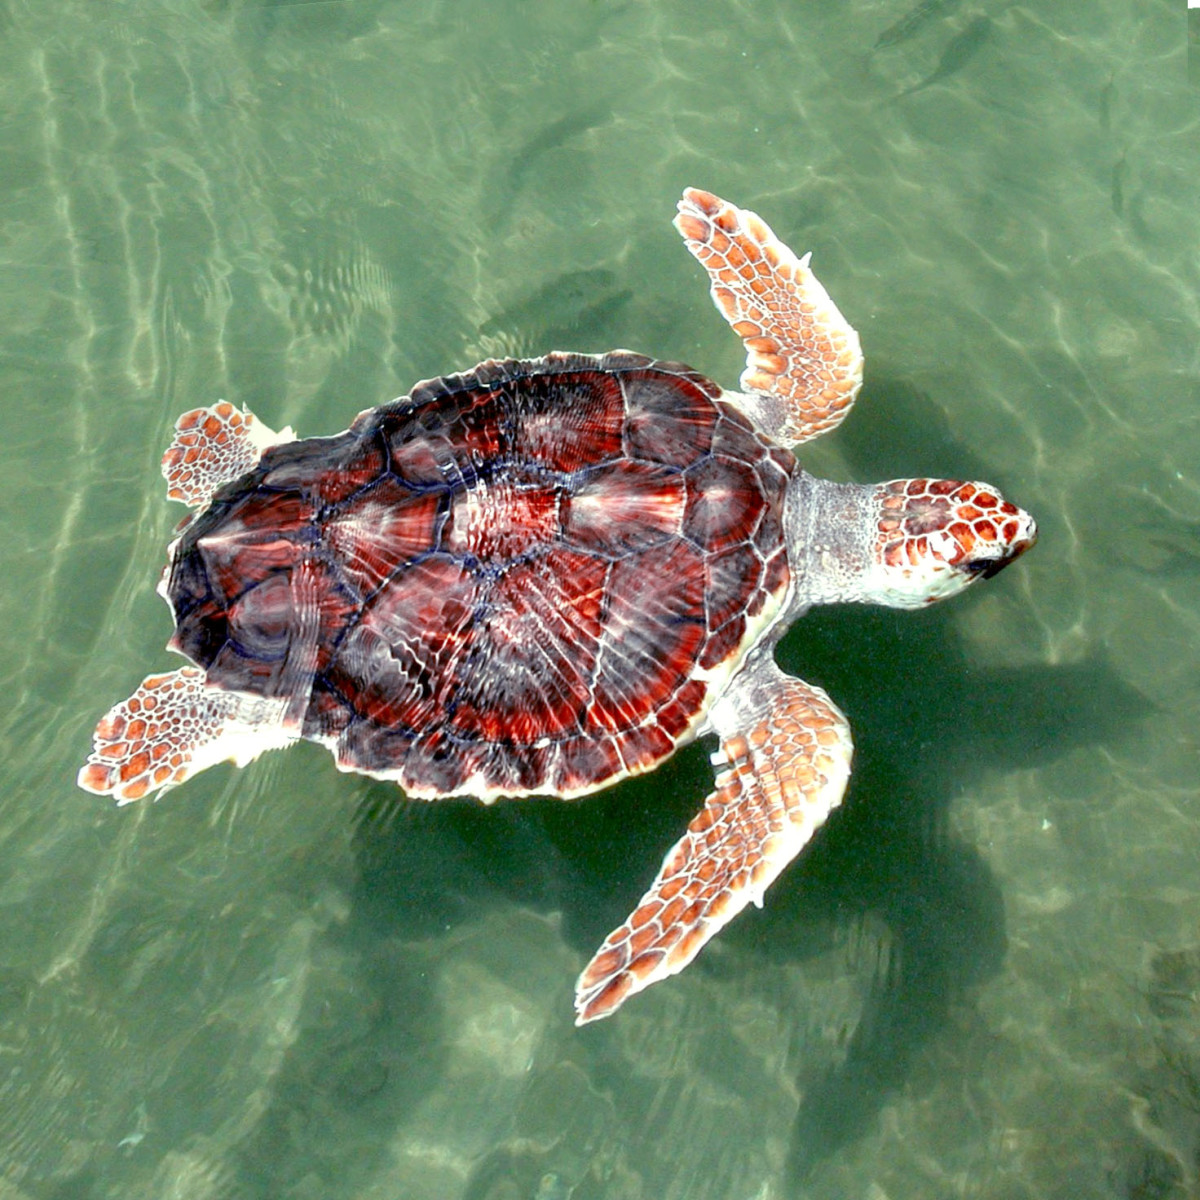 A young loggerhead sea turtle (Caretta caretta) photographed near Panama City, Florida.